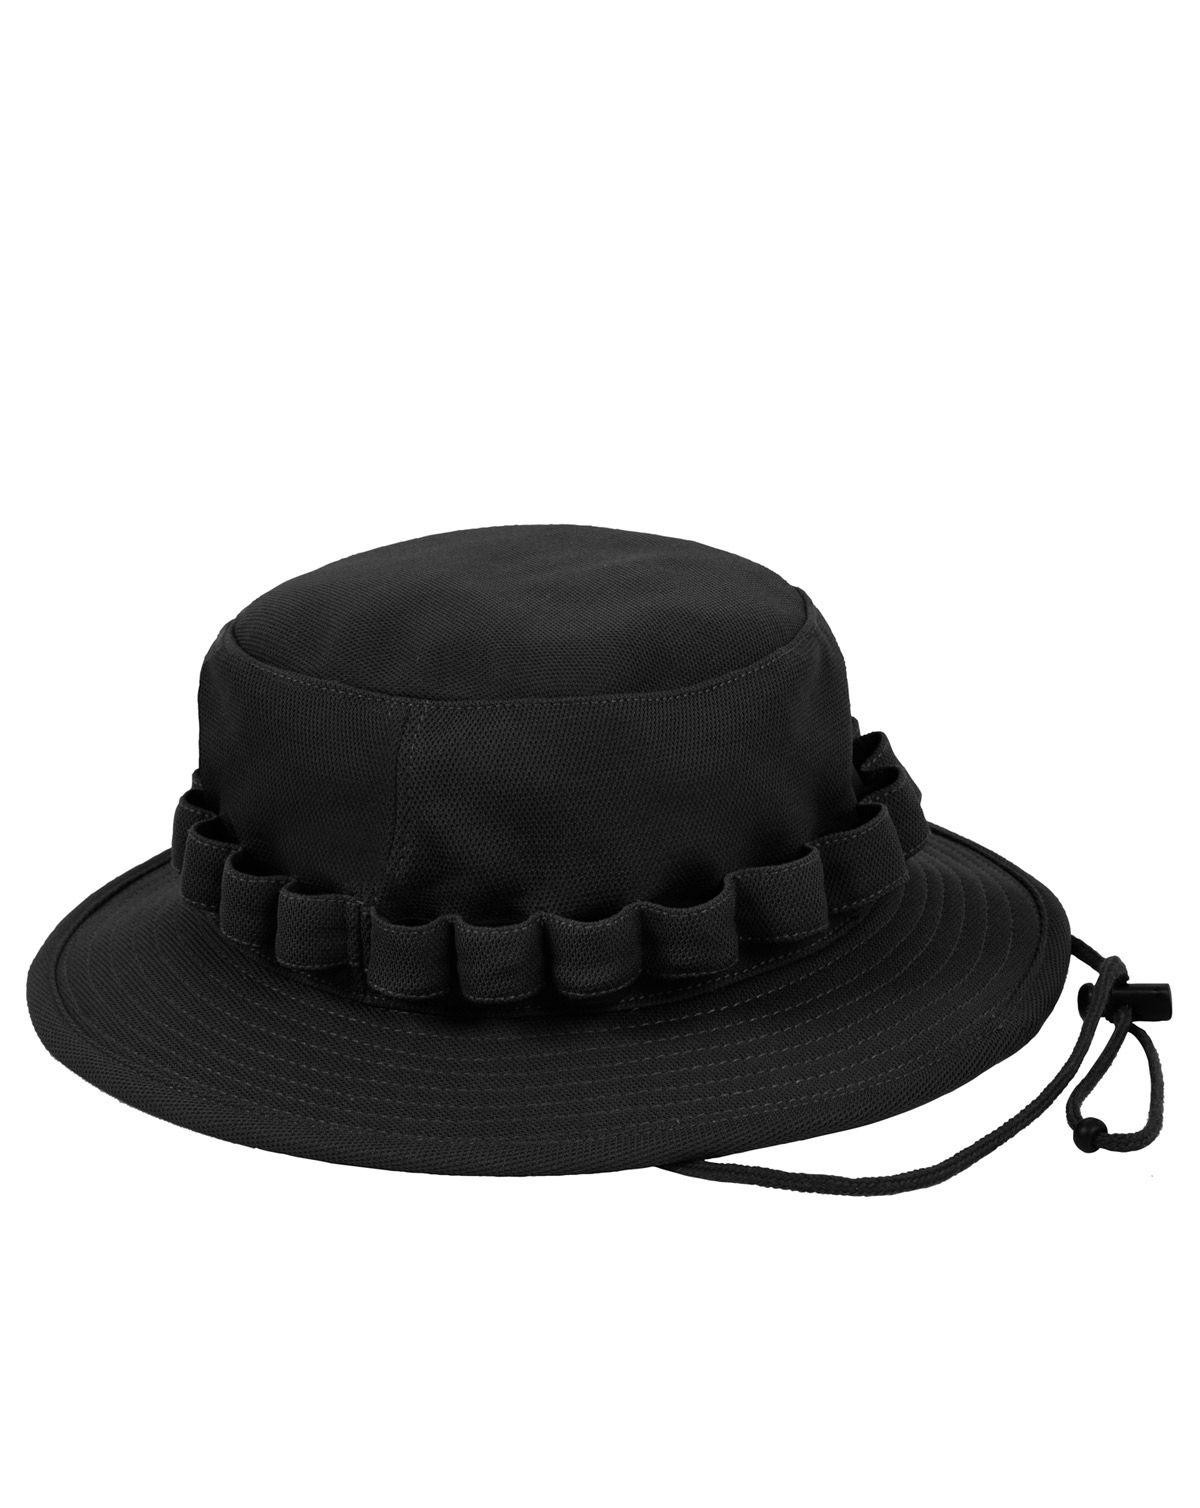 Image of   Rothco Coolweight Boonie Hat (Sort, S/M)